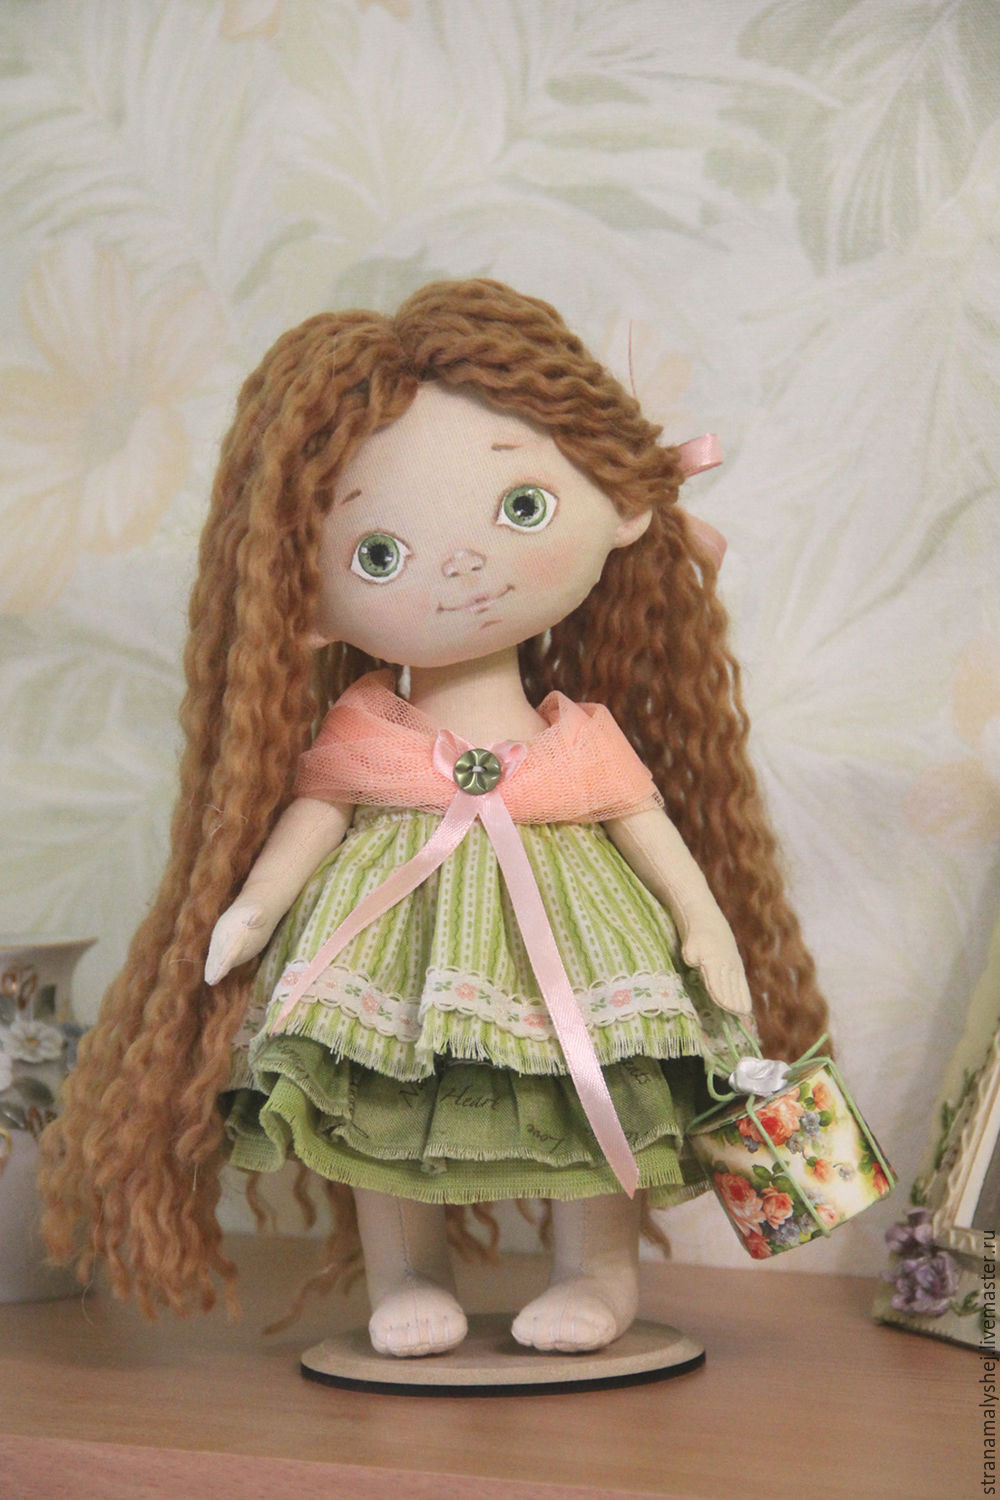 Collectible dolls, Handmade doll for home decor, doll for the soul, doll with gift box in head, shoeless